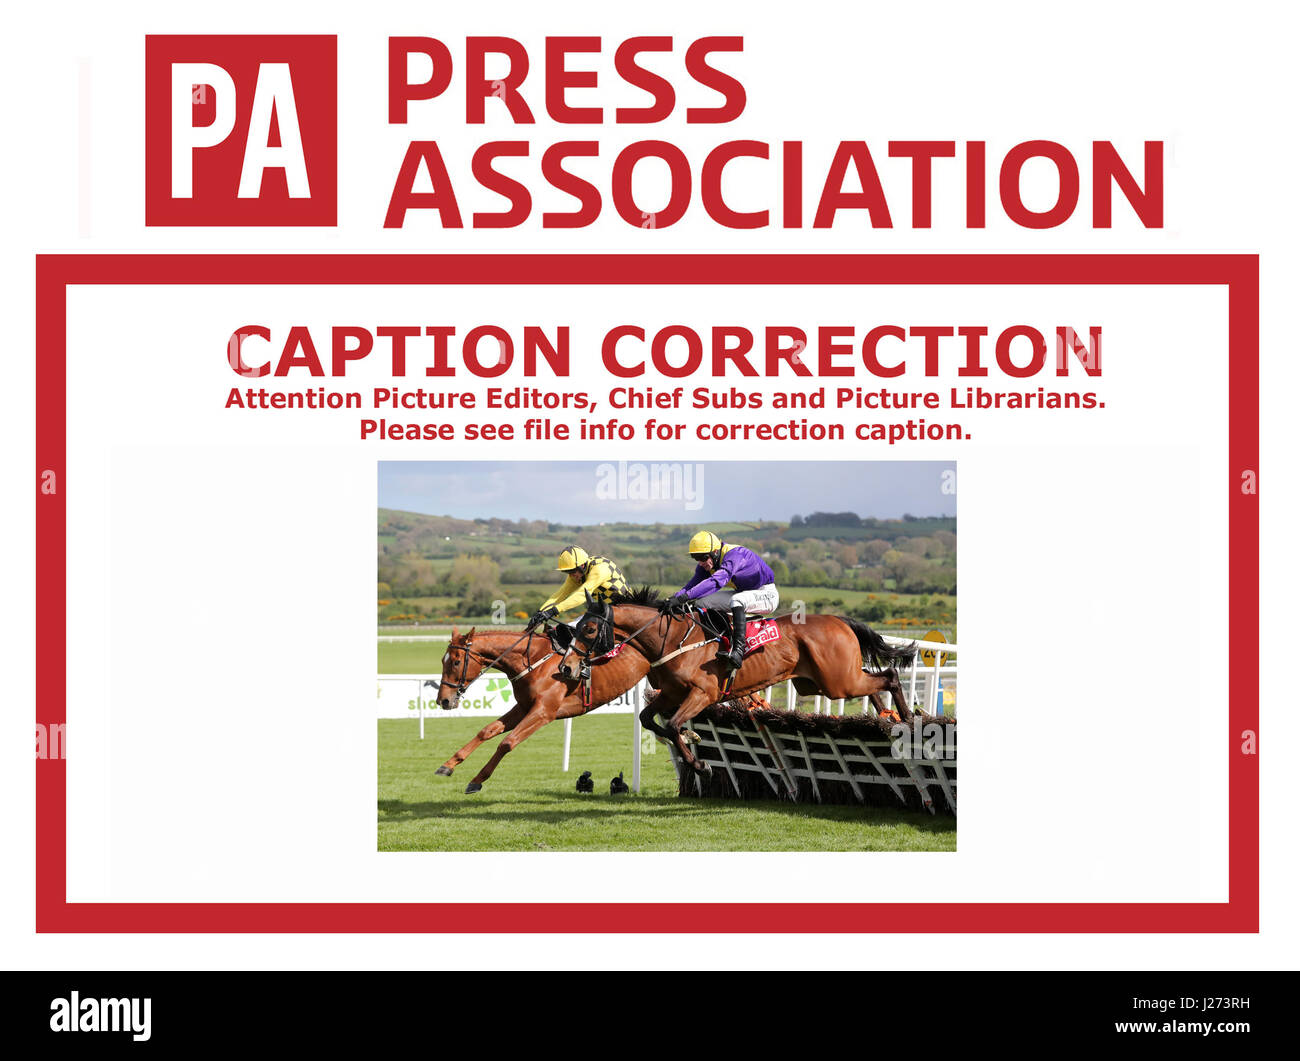 CAPTION CORRECTION CHANGING NAME OF JOCKEY FROM JACK KENNEDY TO DAVID MULLINS IMAGE WILL BE